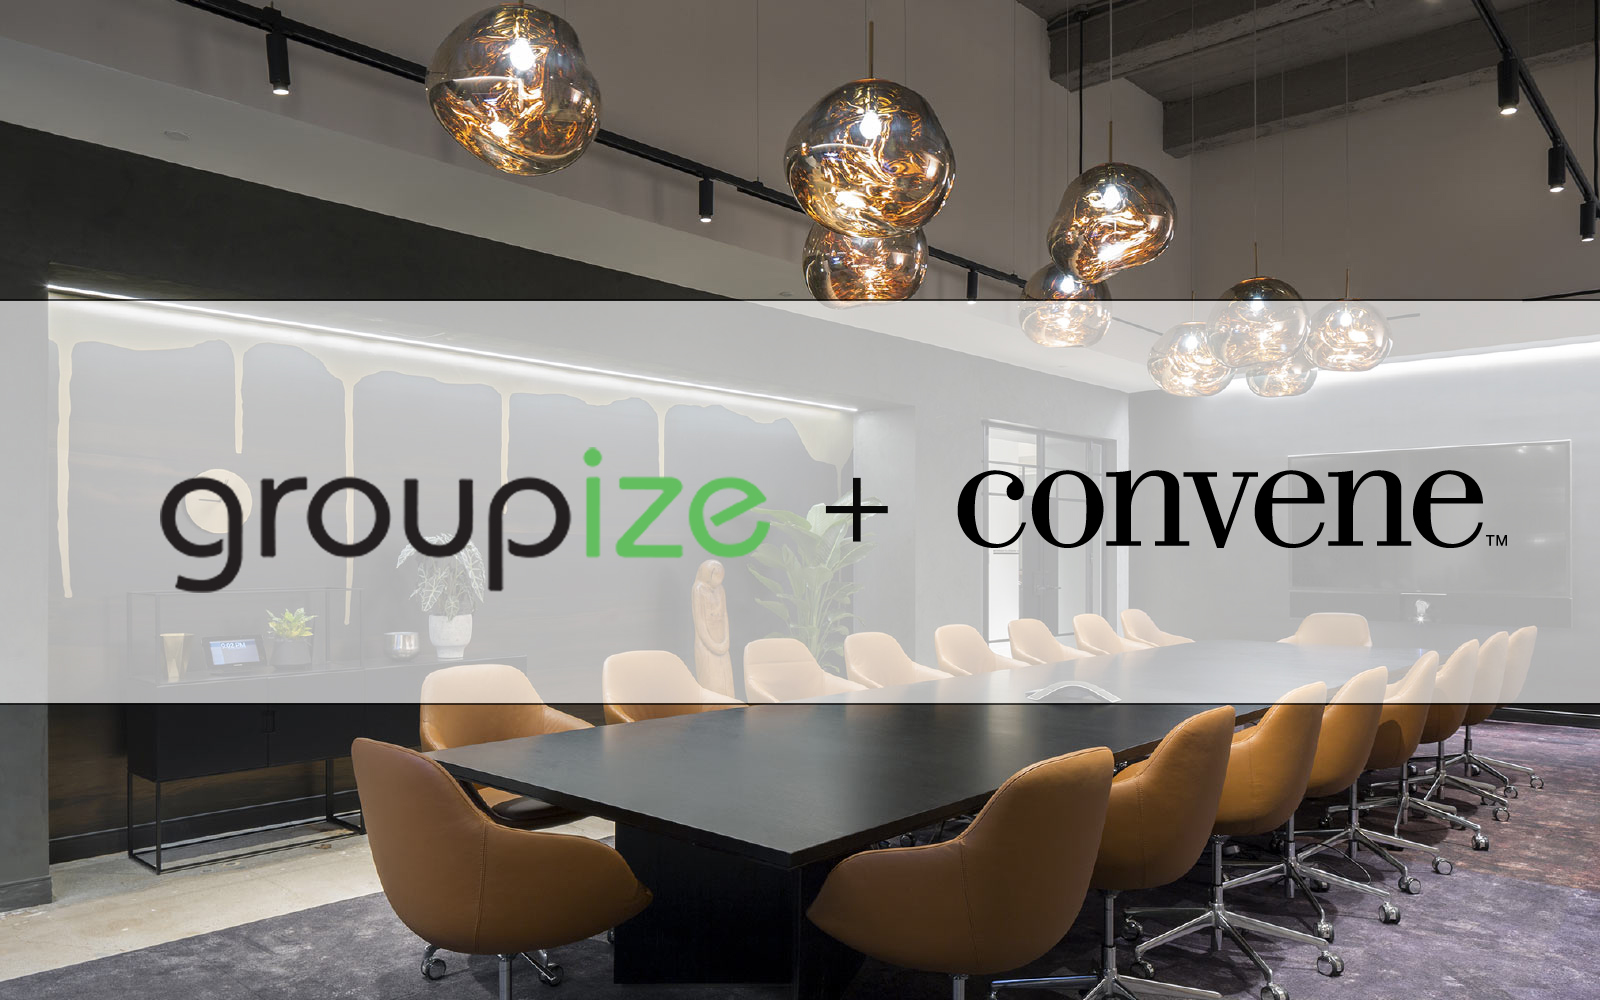 convene groupize partnership (1)